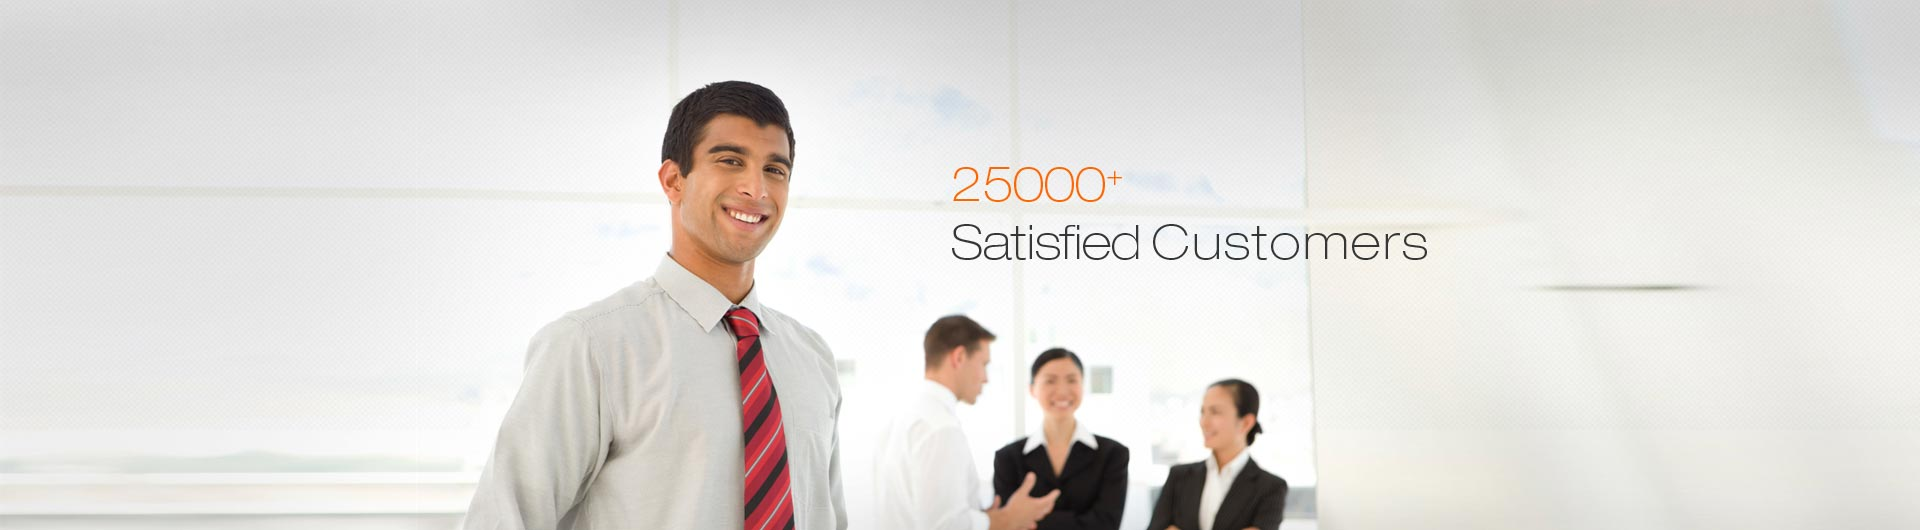 25000 Plus satisfied customers